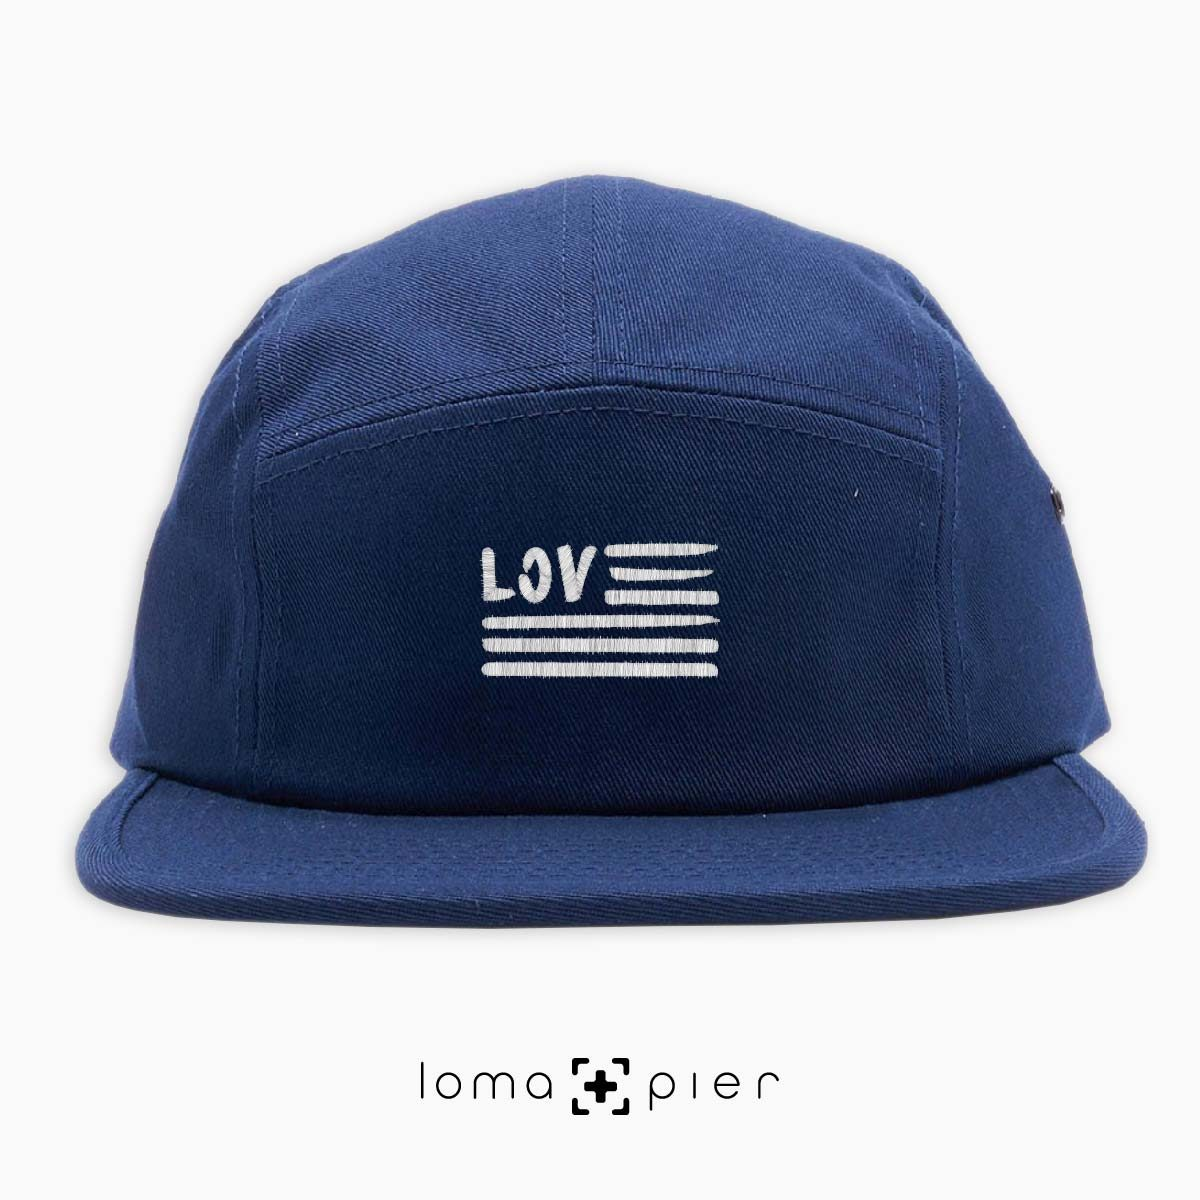 AMERICAN LOVE icon embroidered on a navy blue cotton 5-panel hat with white thread by loma+pier hat store